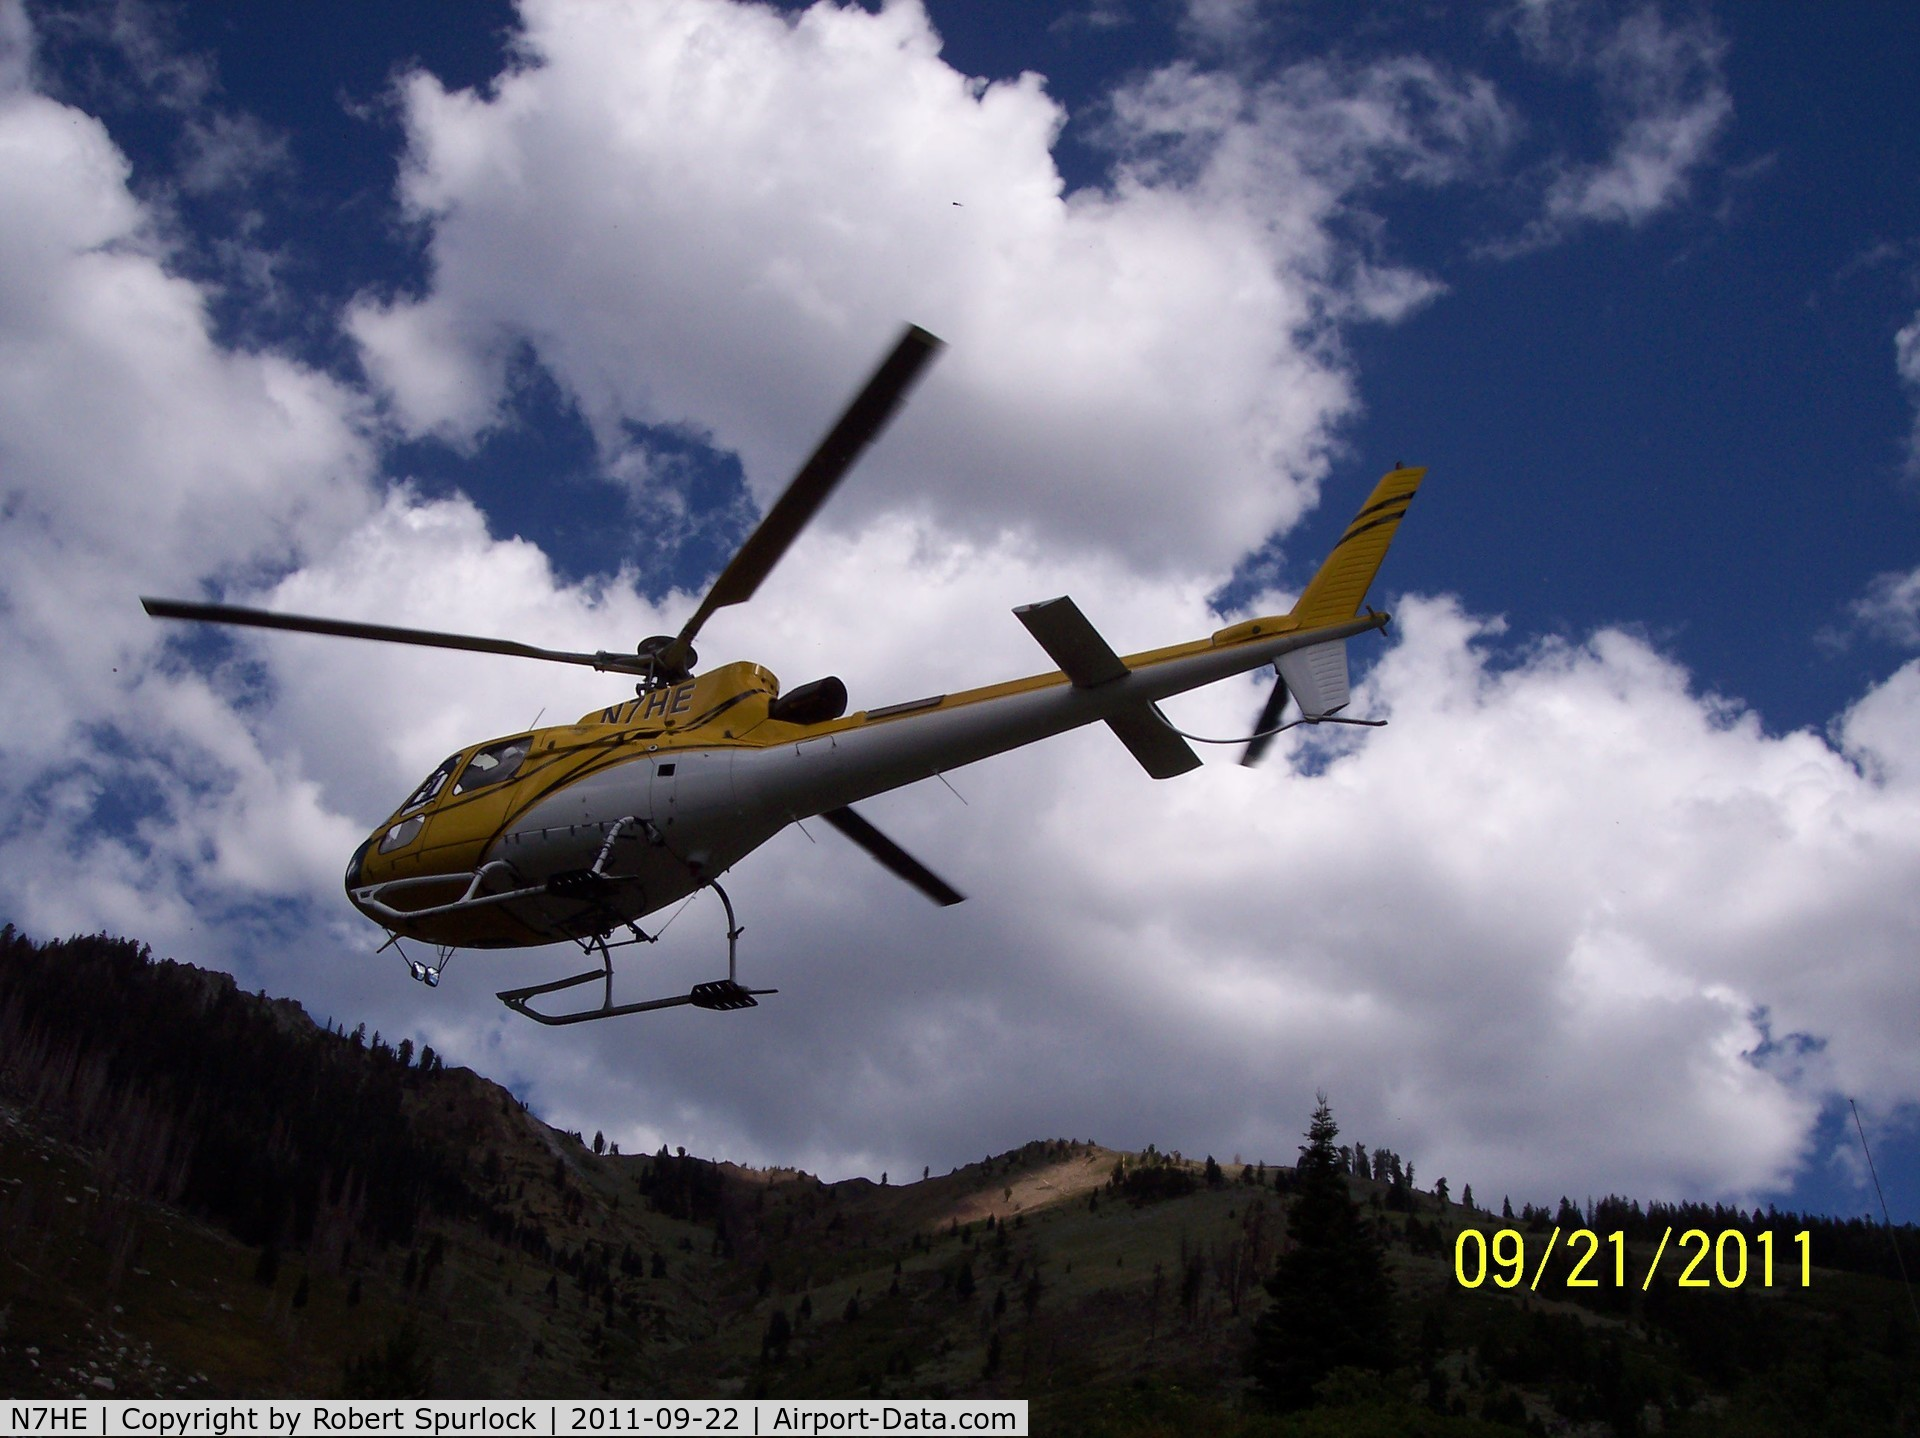 N7HE, 2000 Eurocopter AS-350B-3 Ecureuil C/N 3269, Flight of National park trail workers coming home for the season to Mineral King Heliport.